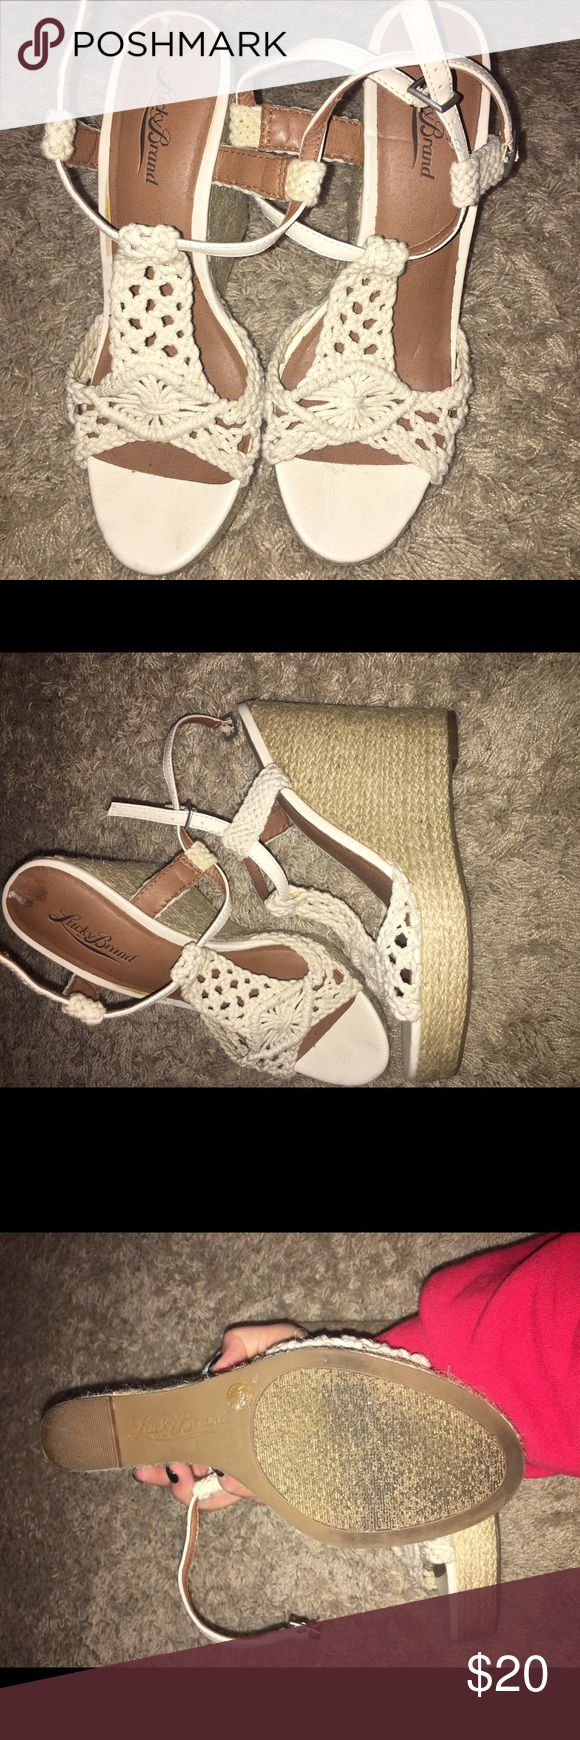 Lucky Brand Cream Wedges excellent condition, adjustable straps around ankle, slight tear on sole from price tag, cream, braided heel Lucky Brand Shoes Wedges